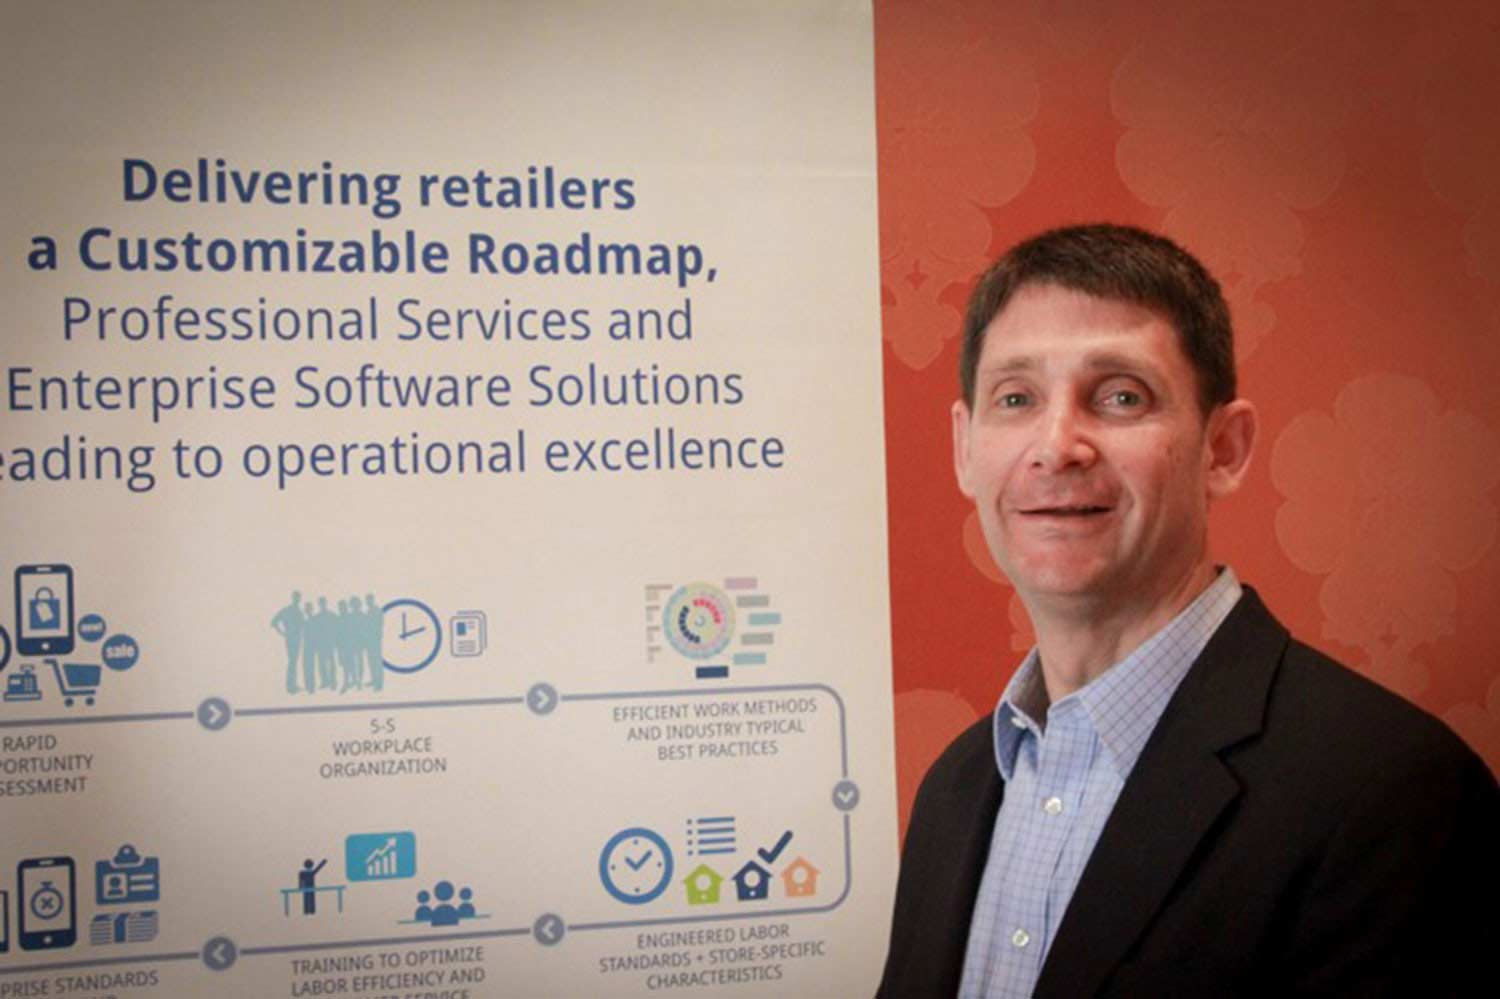 Doug Madenberg (The Retail Feedback Group)